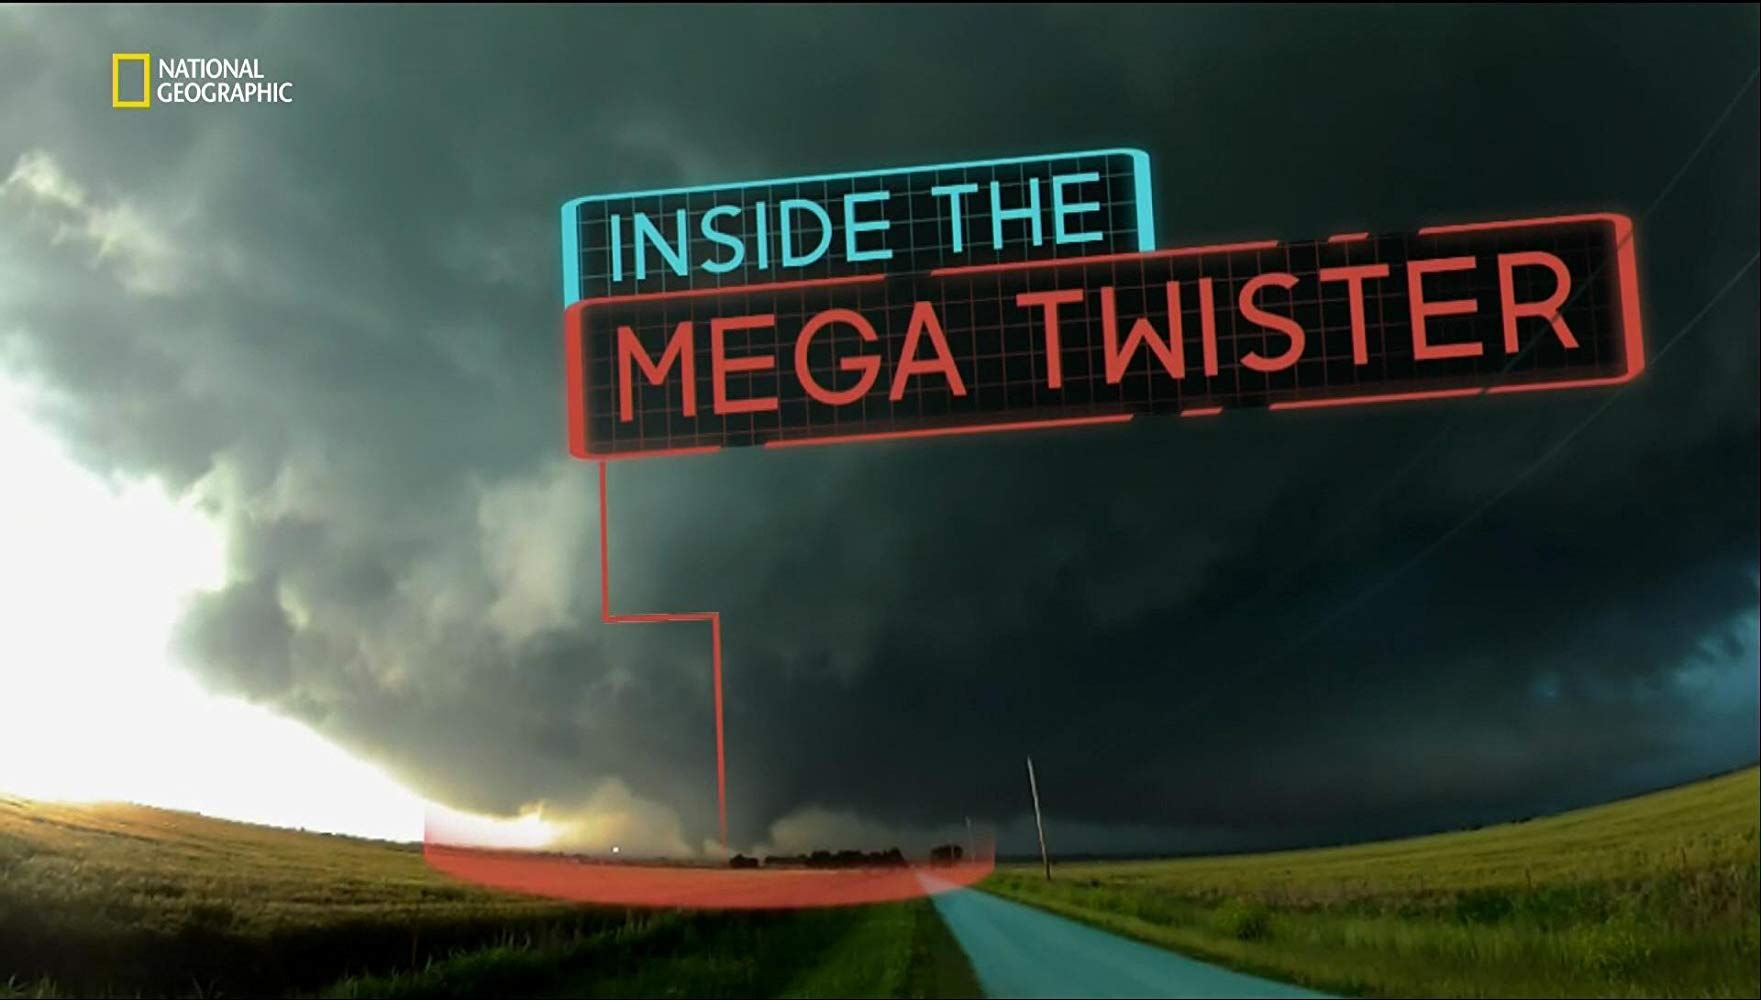 Inside the Mega Twister